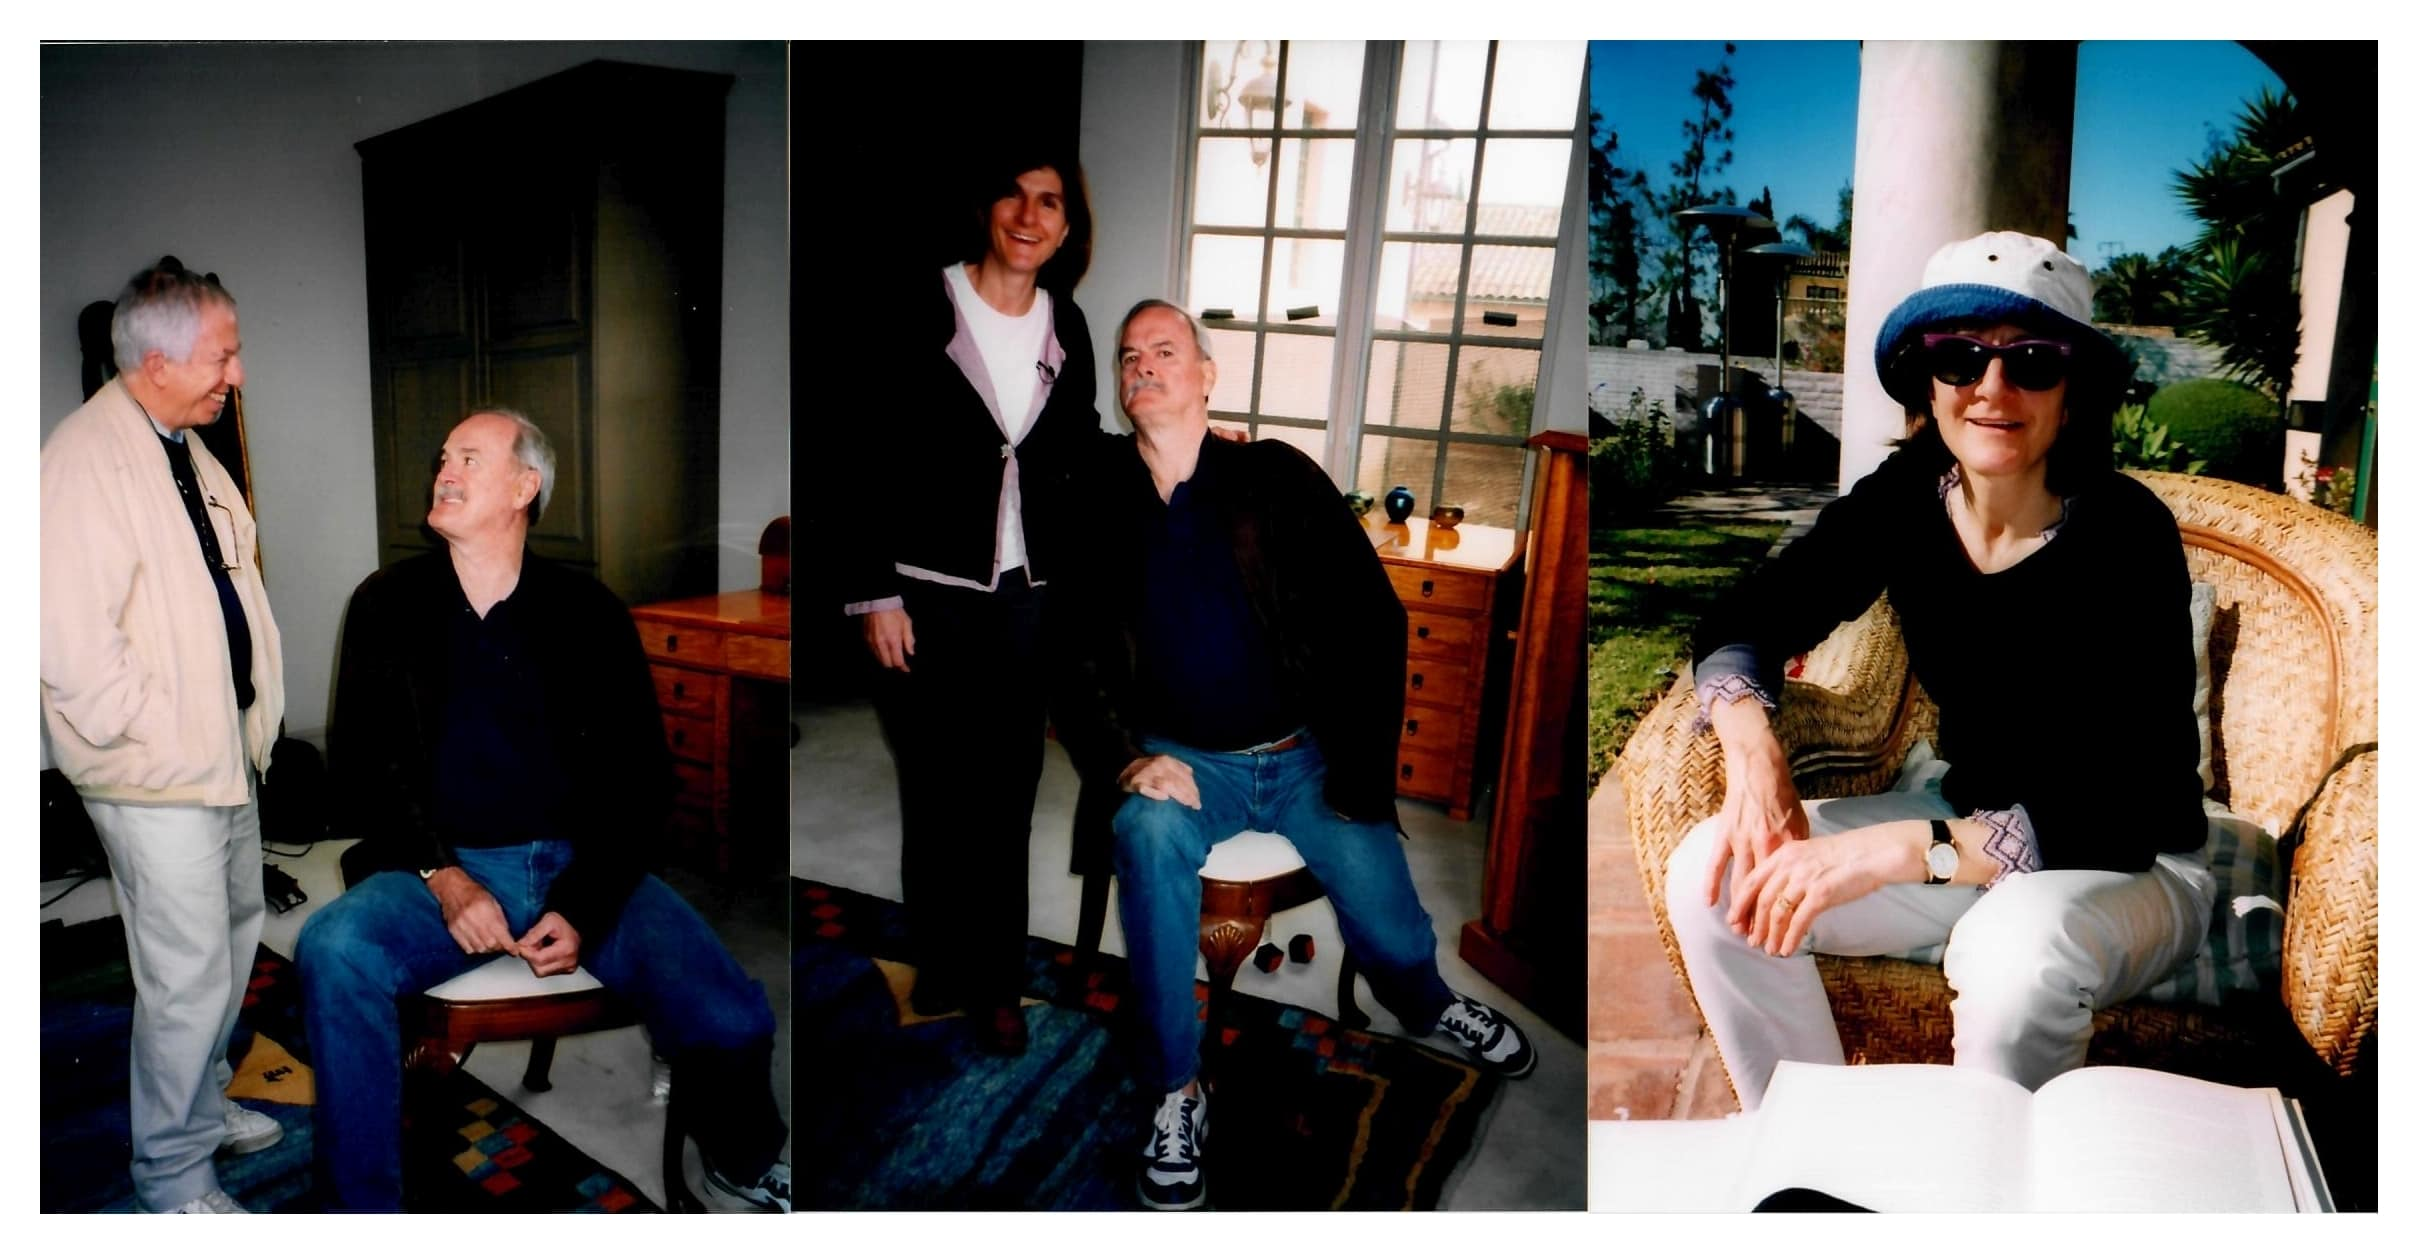 """Remember the Secret Policeman's Ball"" location filming in California, founder Monty Python <strong>John Cleese</strong> with director Margy Kinmonth and producer Roger Graef. Cleese relives the secrets of his hilarious Peter Cook sketch. Photos by Johnny Haddock."